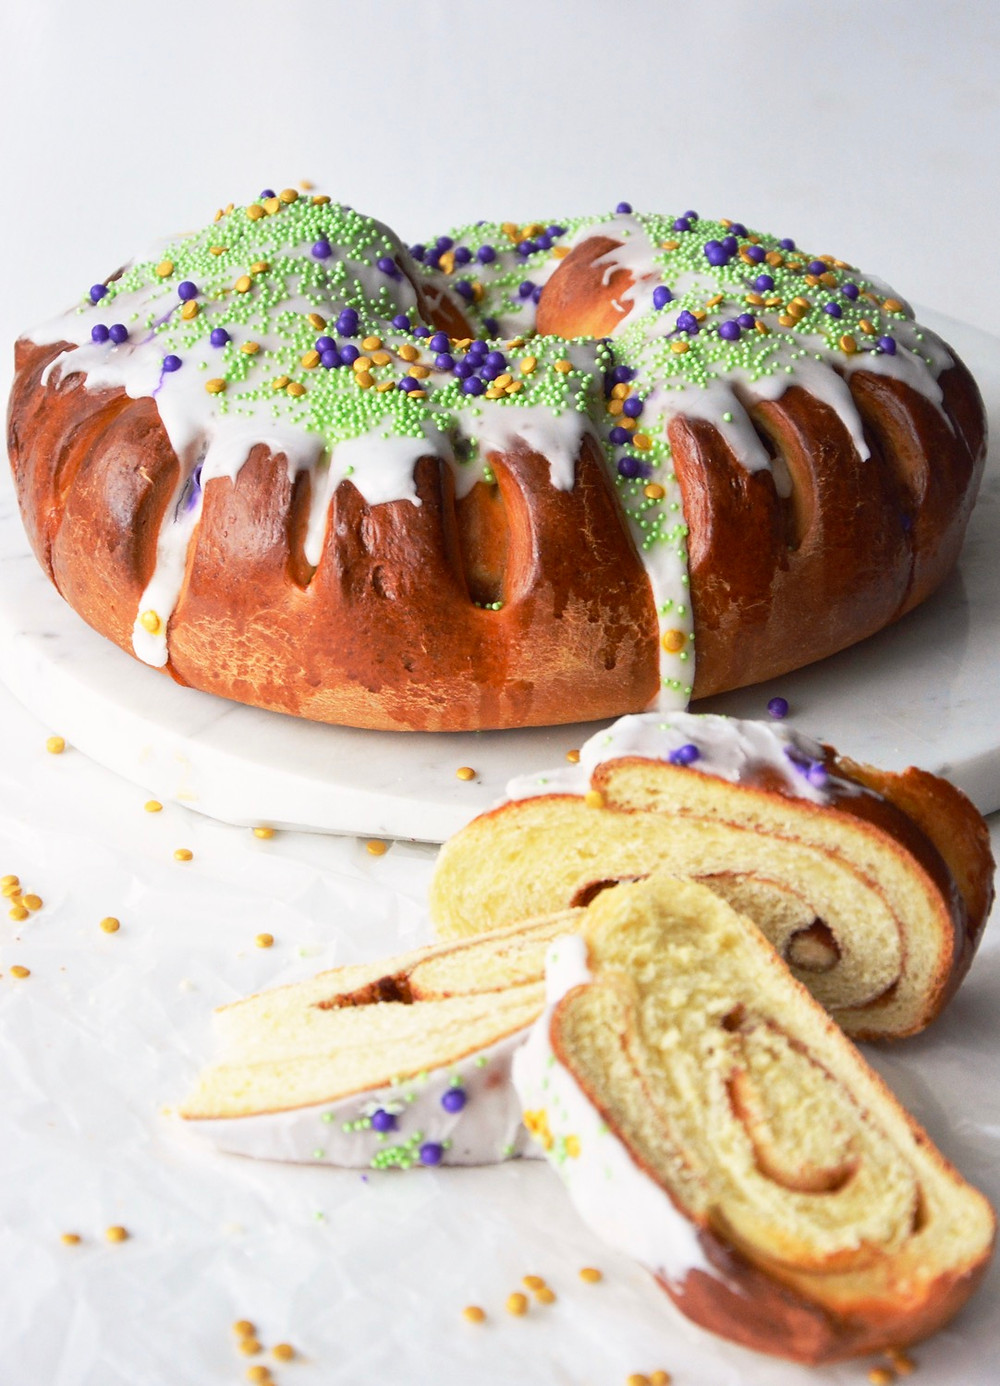 New Orleans style King Cake with a cinnamon swirl